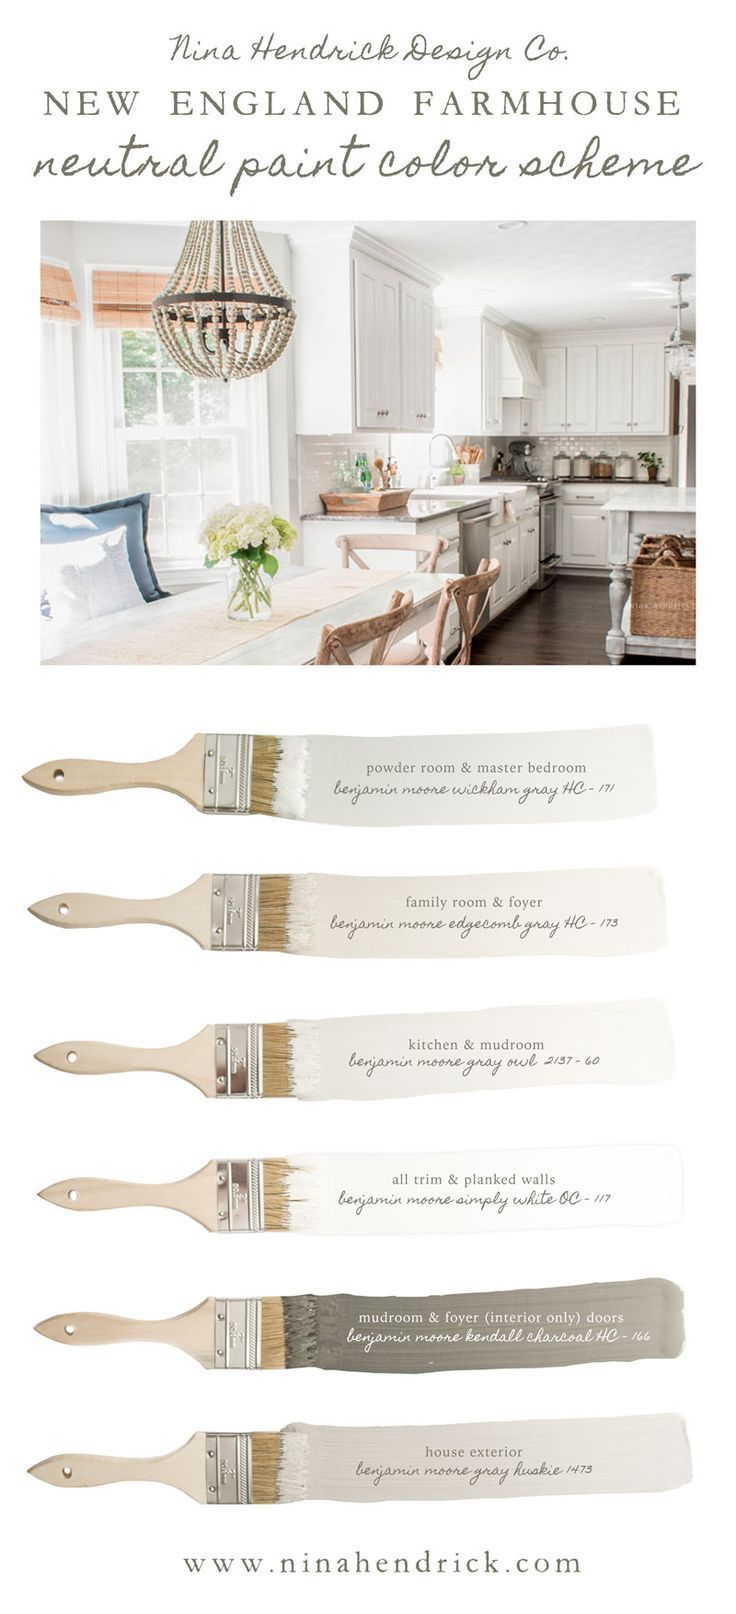 Nina hendrick design co 39 s new england farmhouse neutral for New neutral paint colors